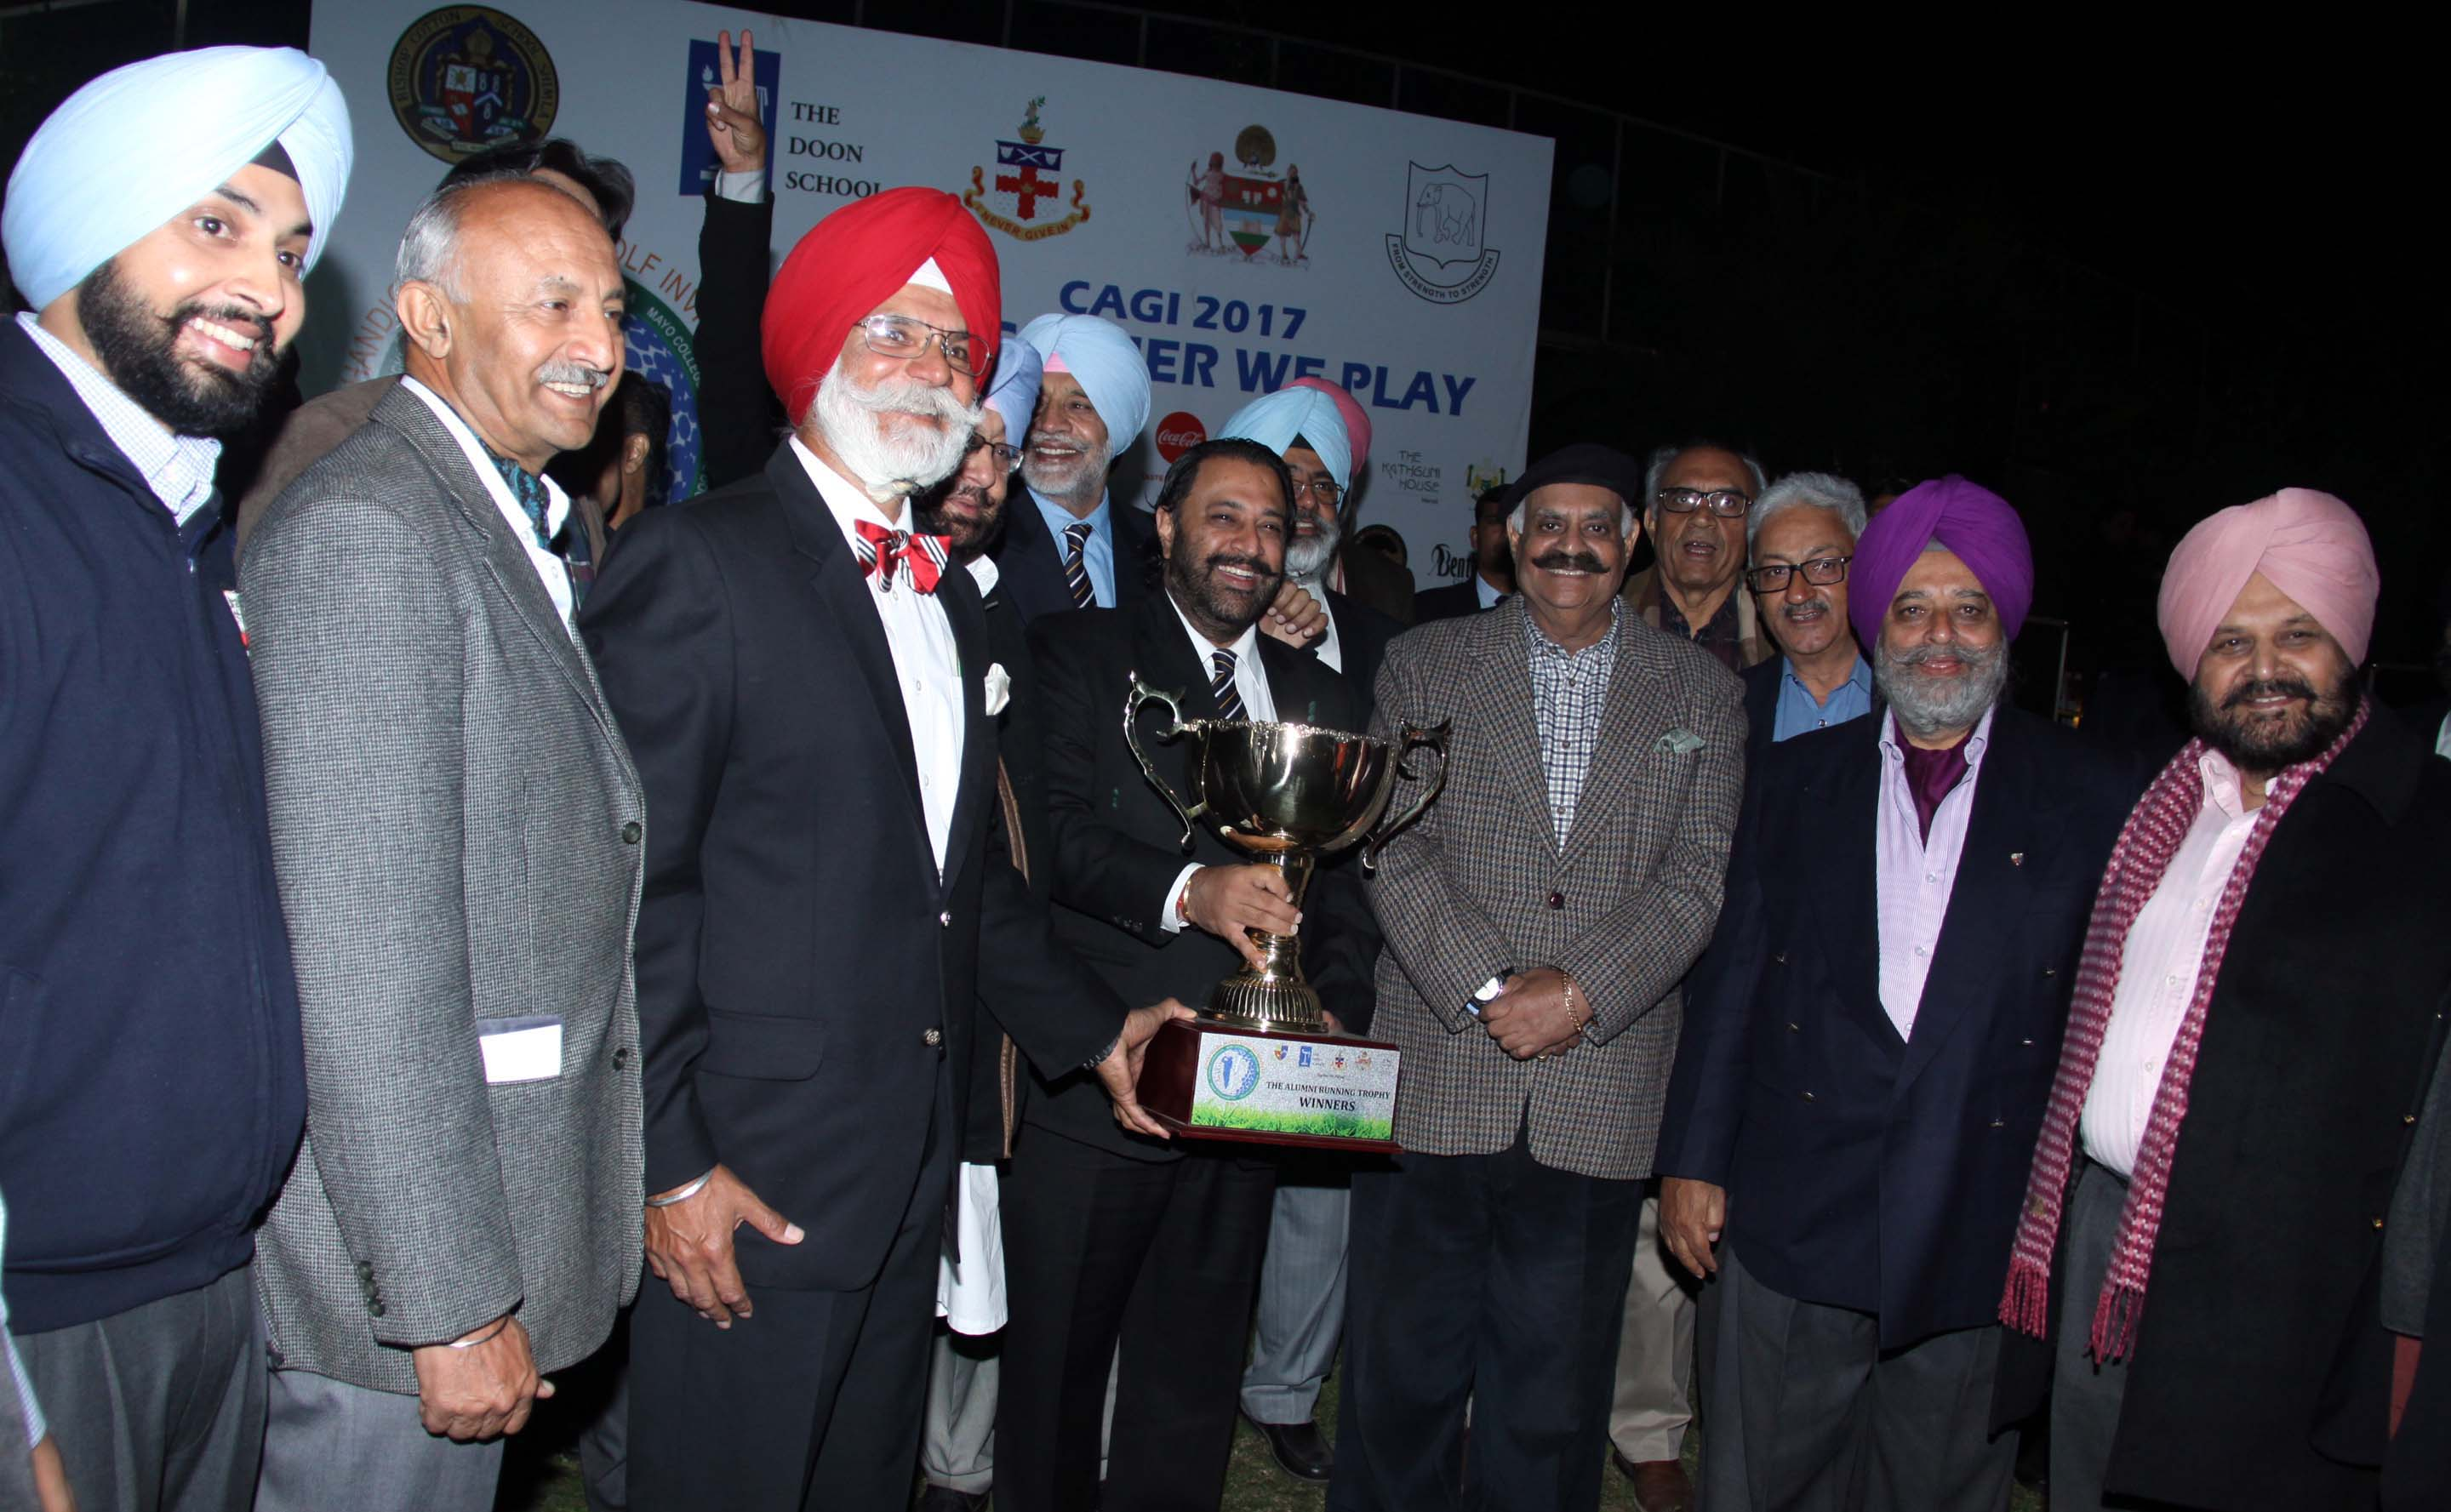 The Punjab Governor and Administrator, UT, Chandigarh, Shri V.P. Singh Badnore posing with  the winners of 2nd Edition of the Chandigarh Aluminium Golf Tournament at Golf Club, Chandigarh on Friday, February 24, 2017.